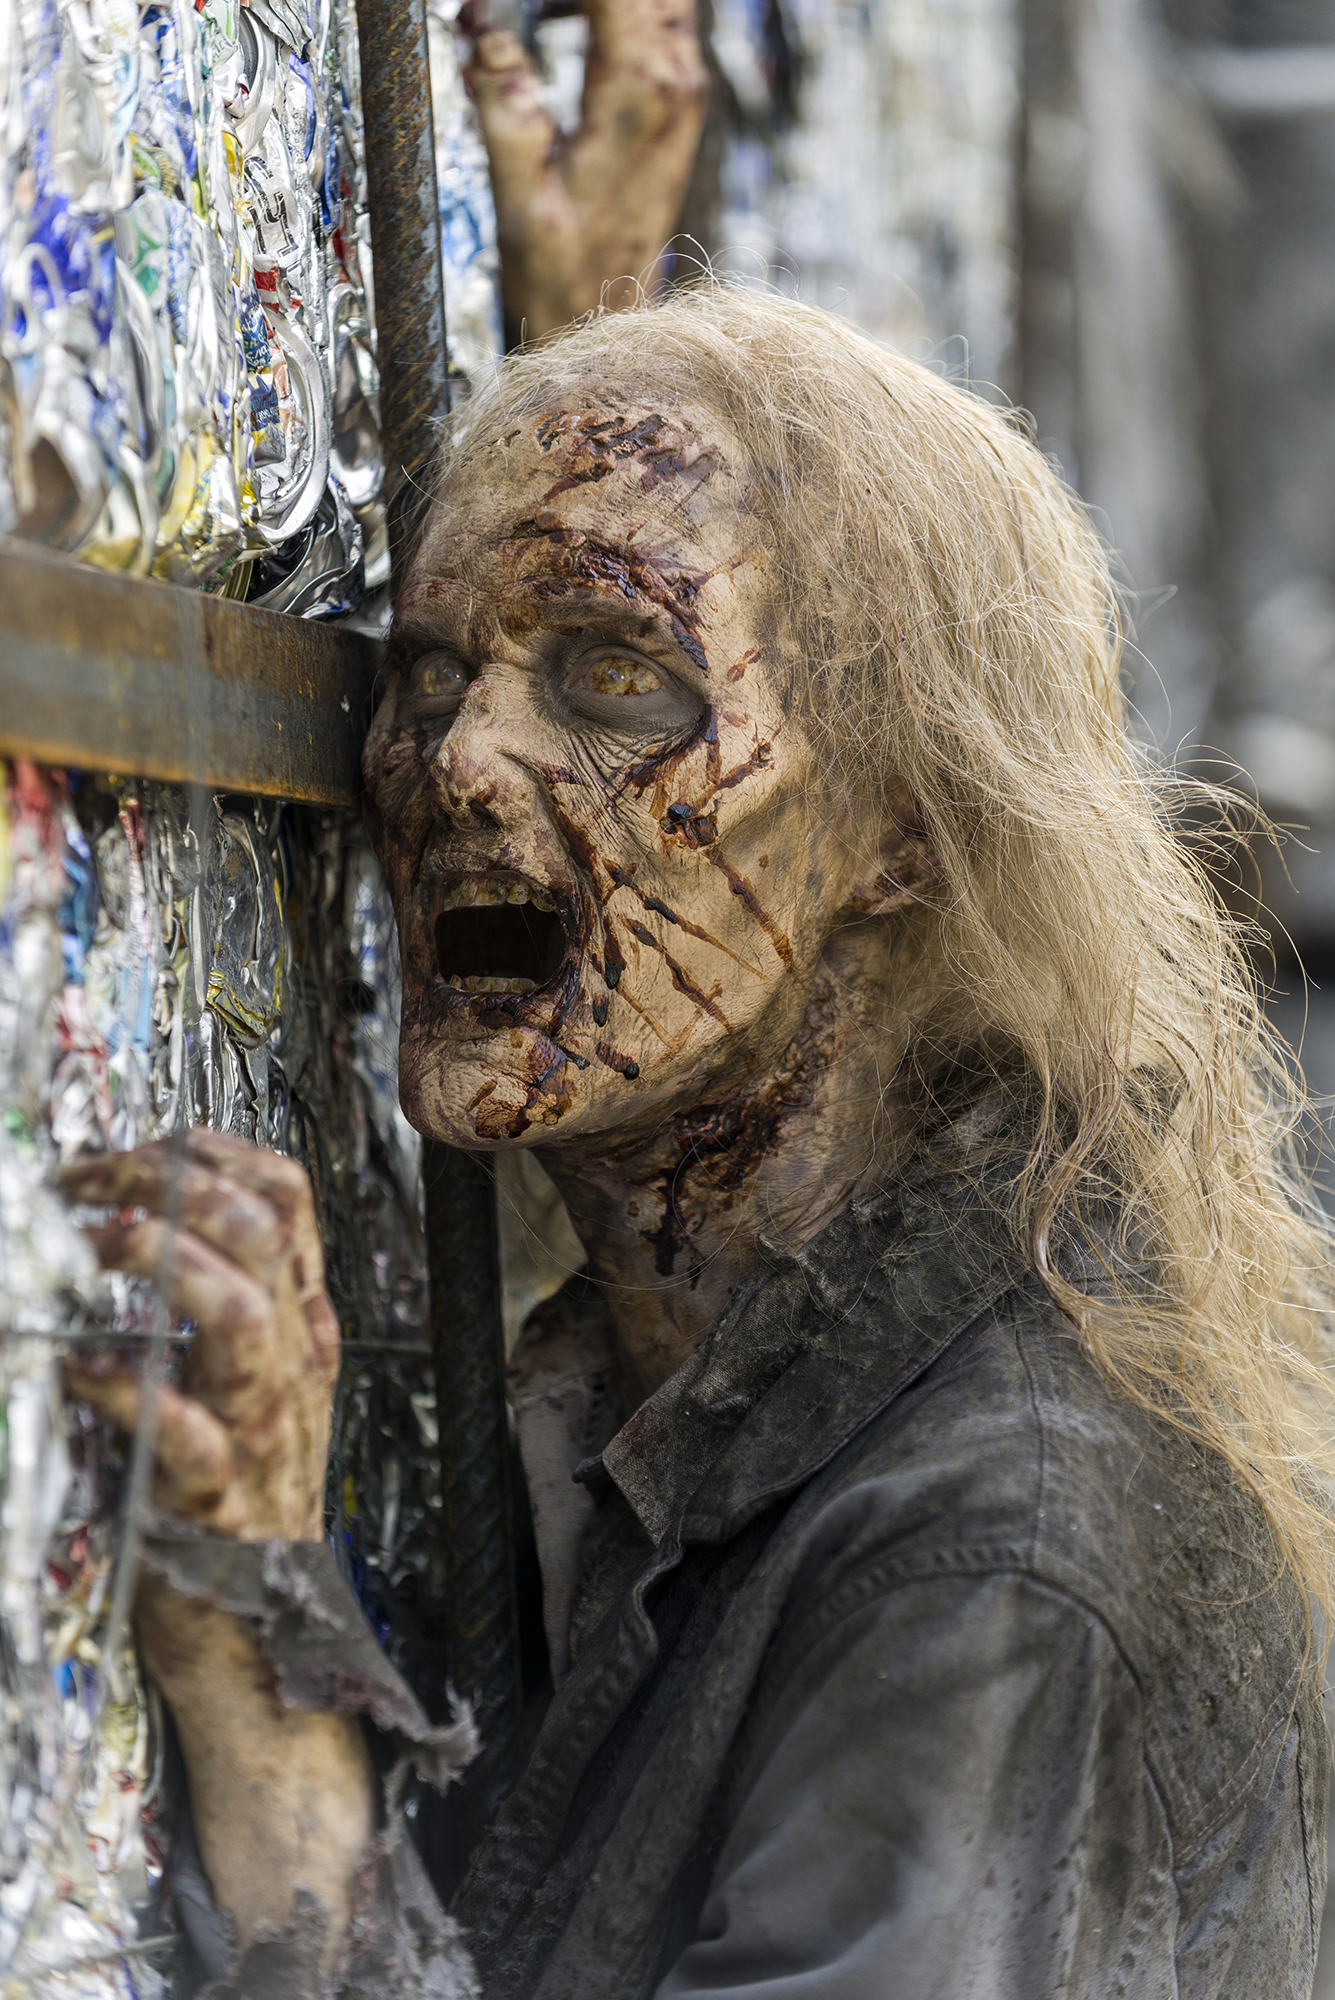 Walker - The Walking Dead, Season 7, Episode 13